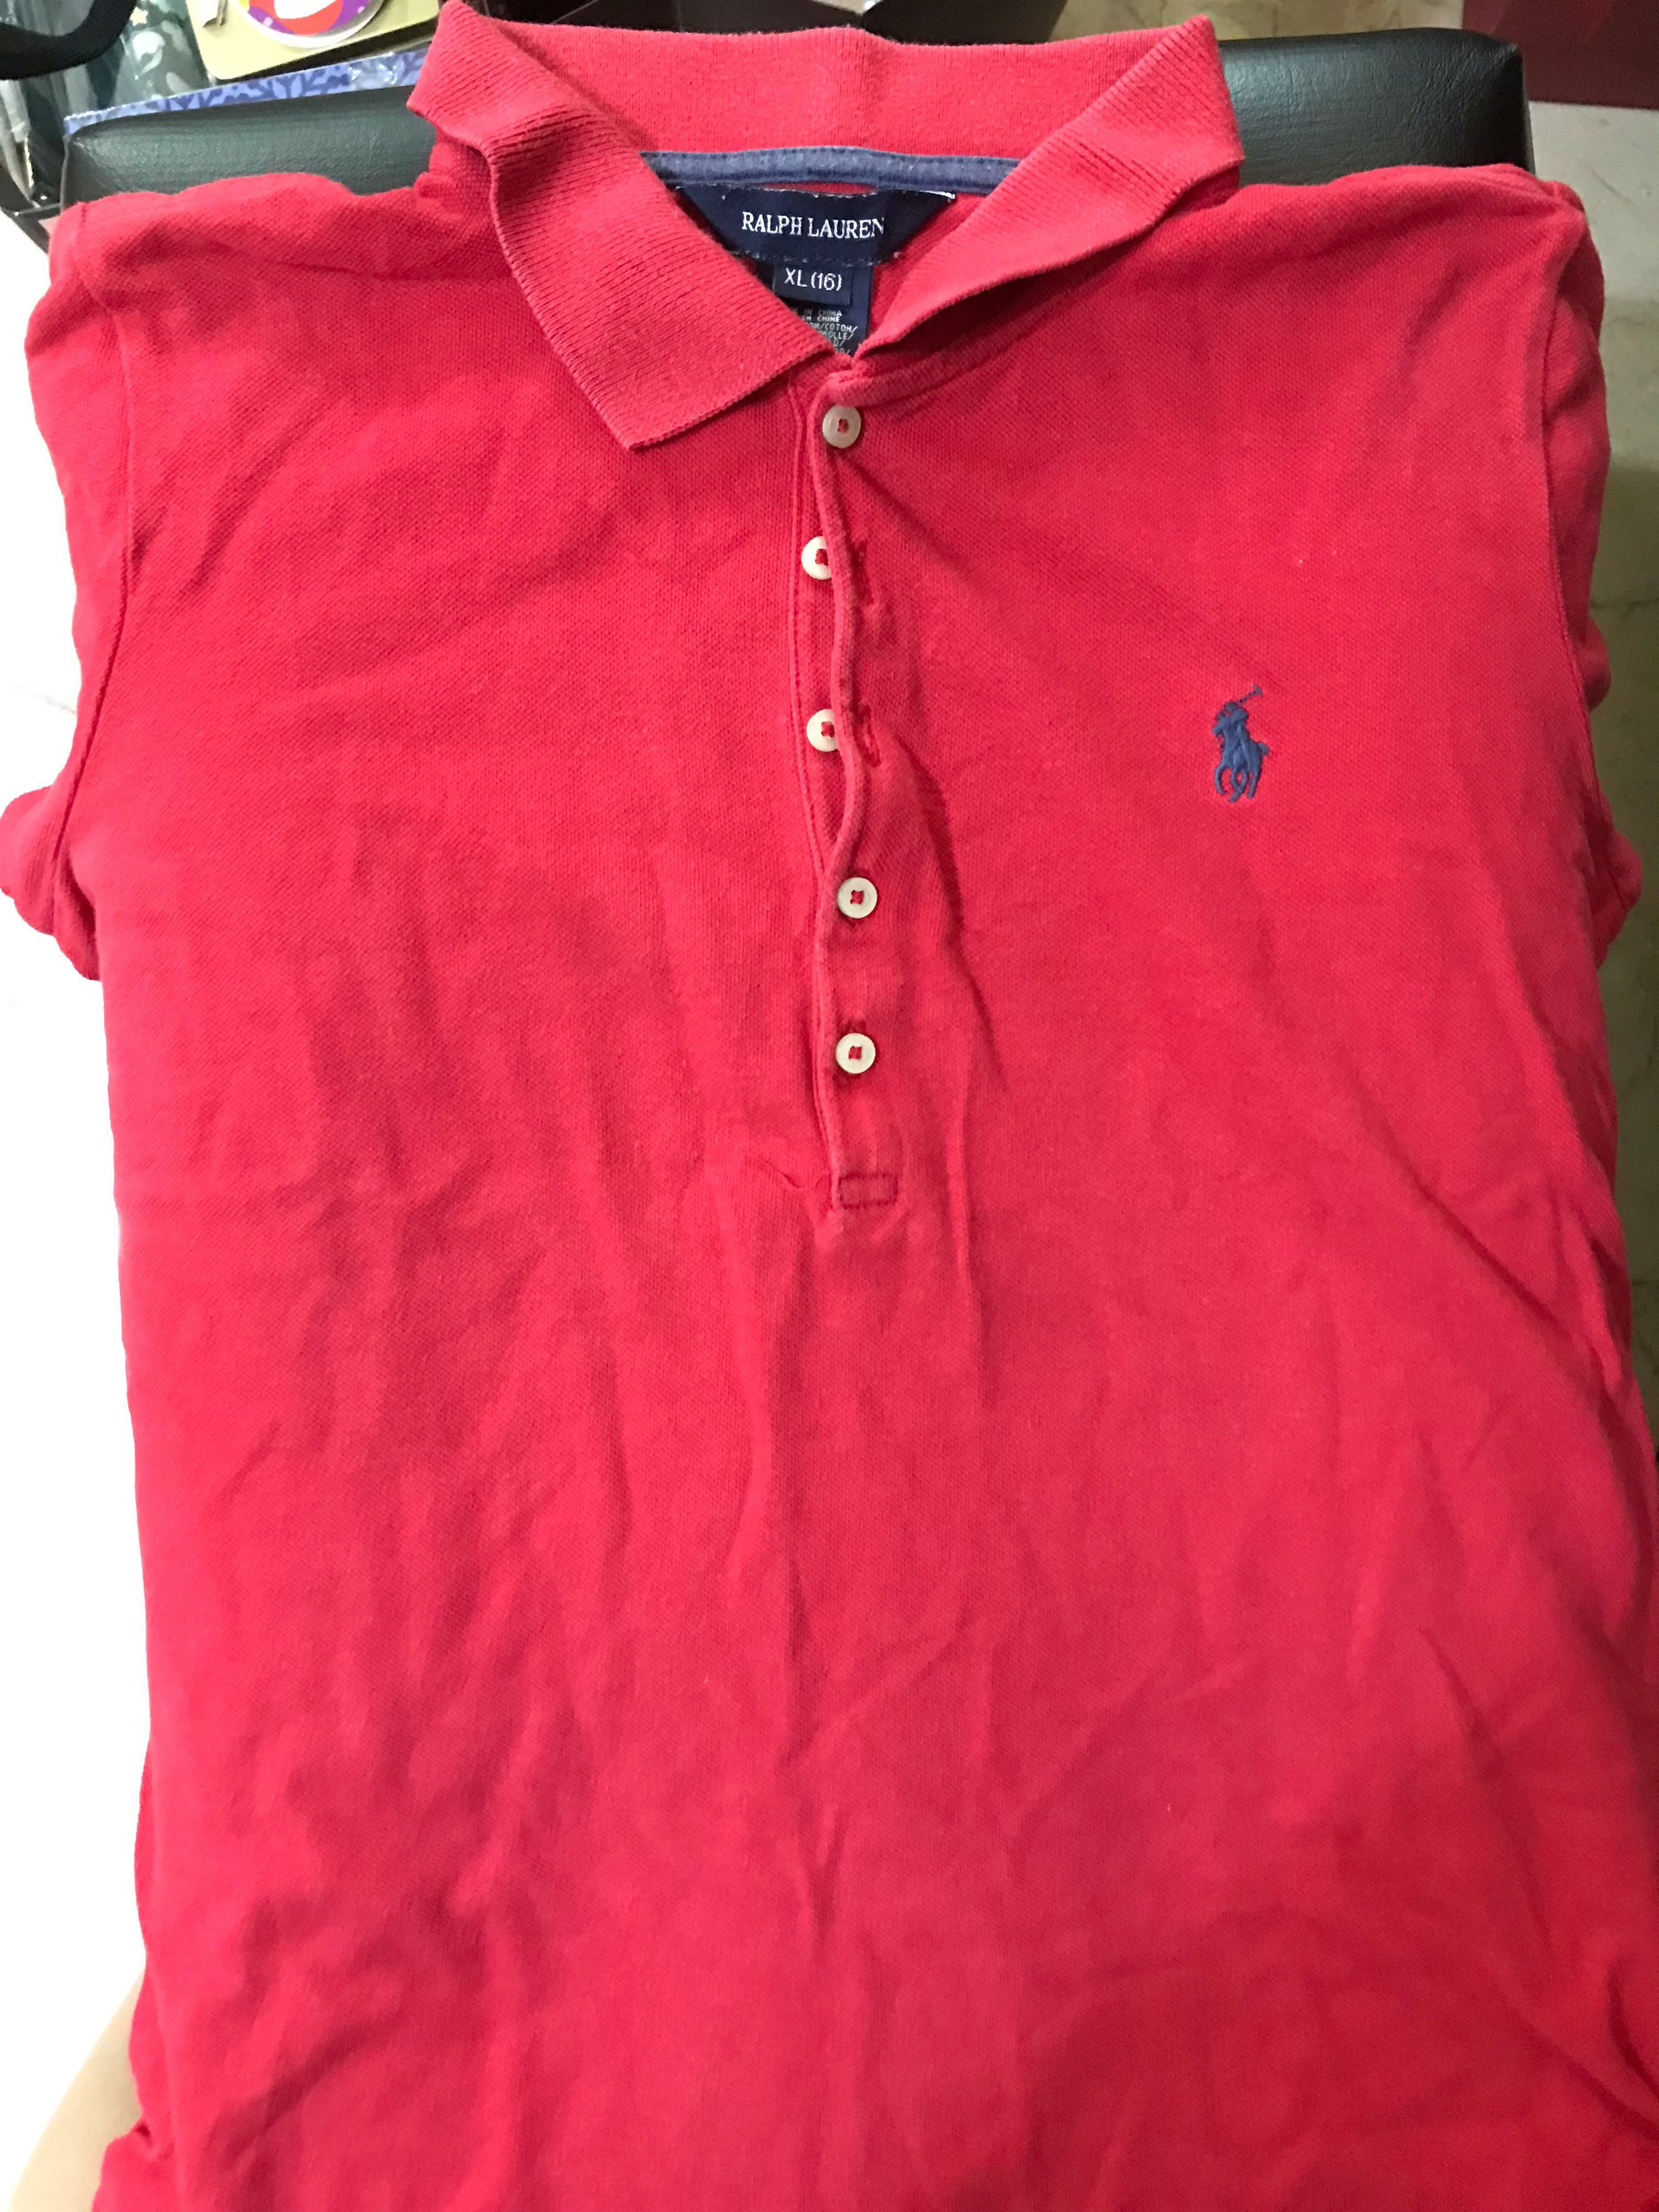 495c1b6f Polo Ralph Lauren tops, Women's Fashion, Clothes, Tops on Carousell